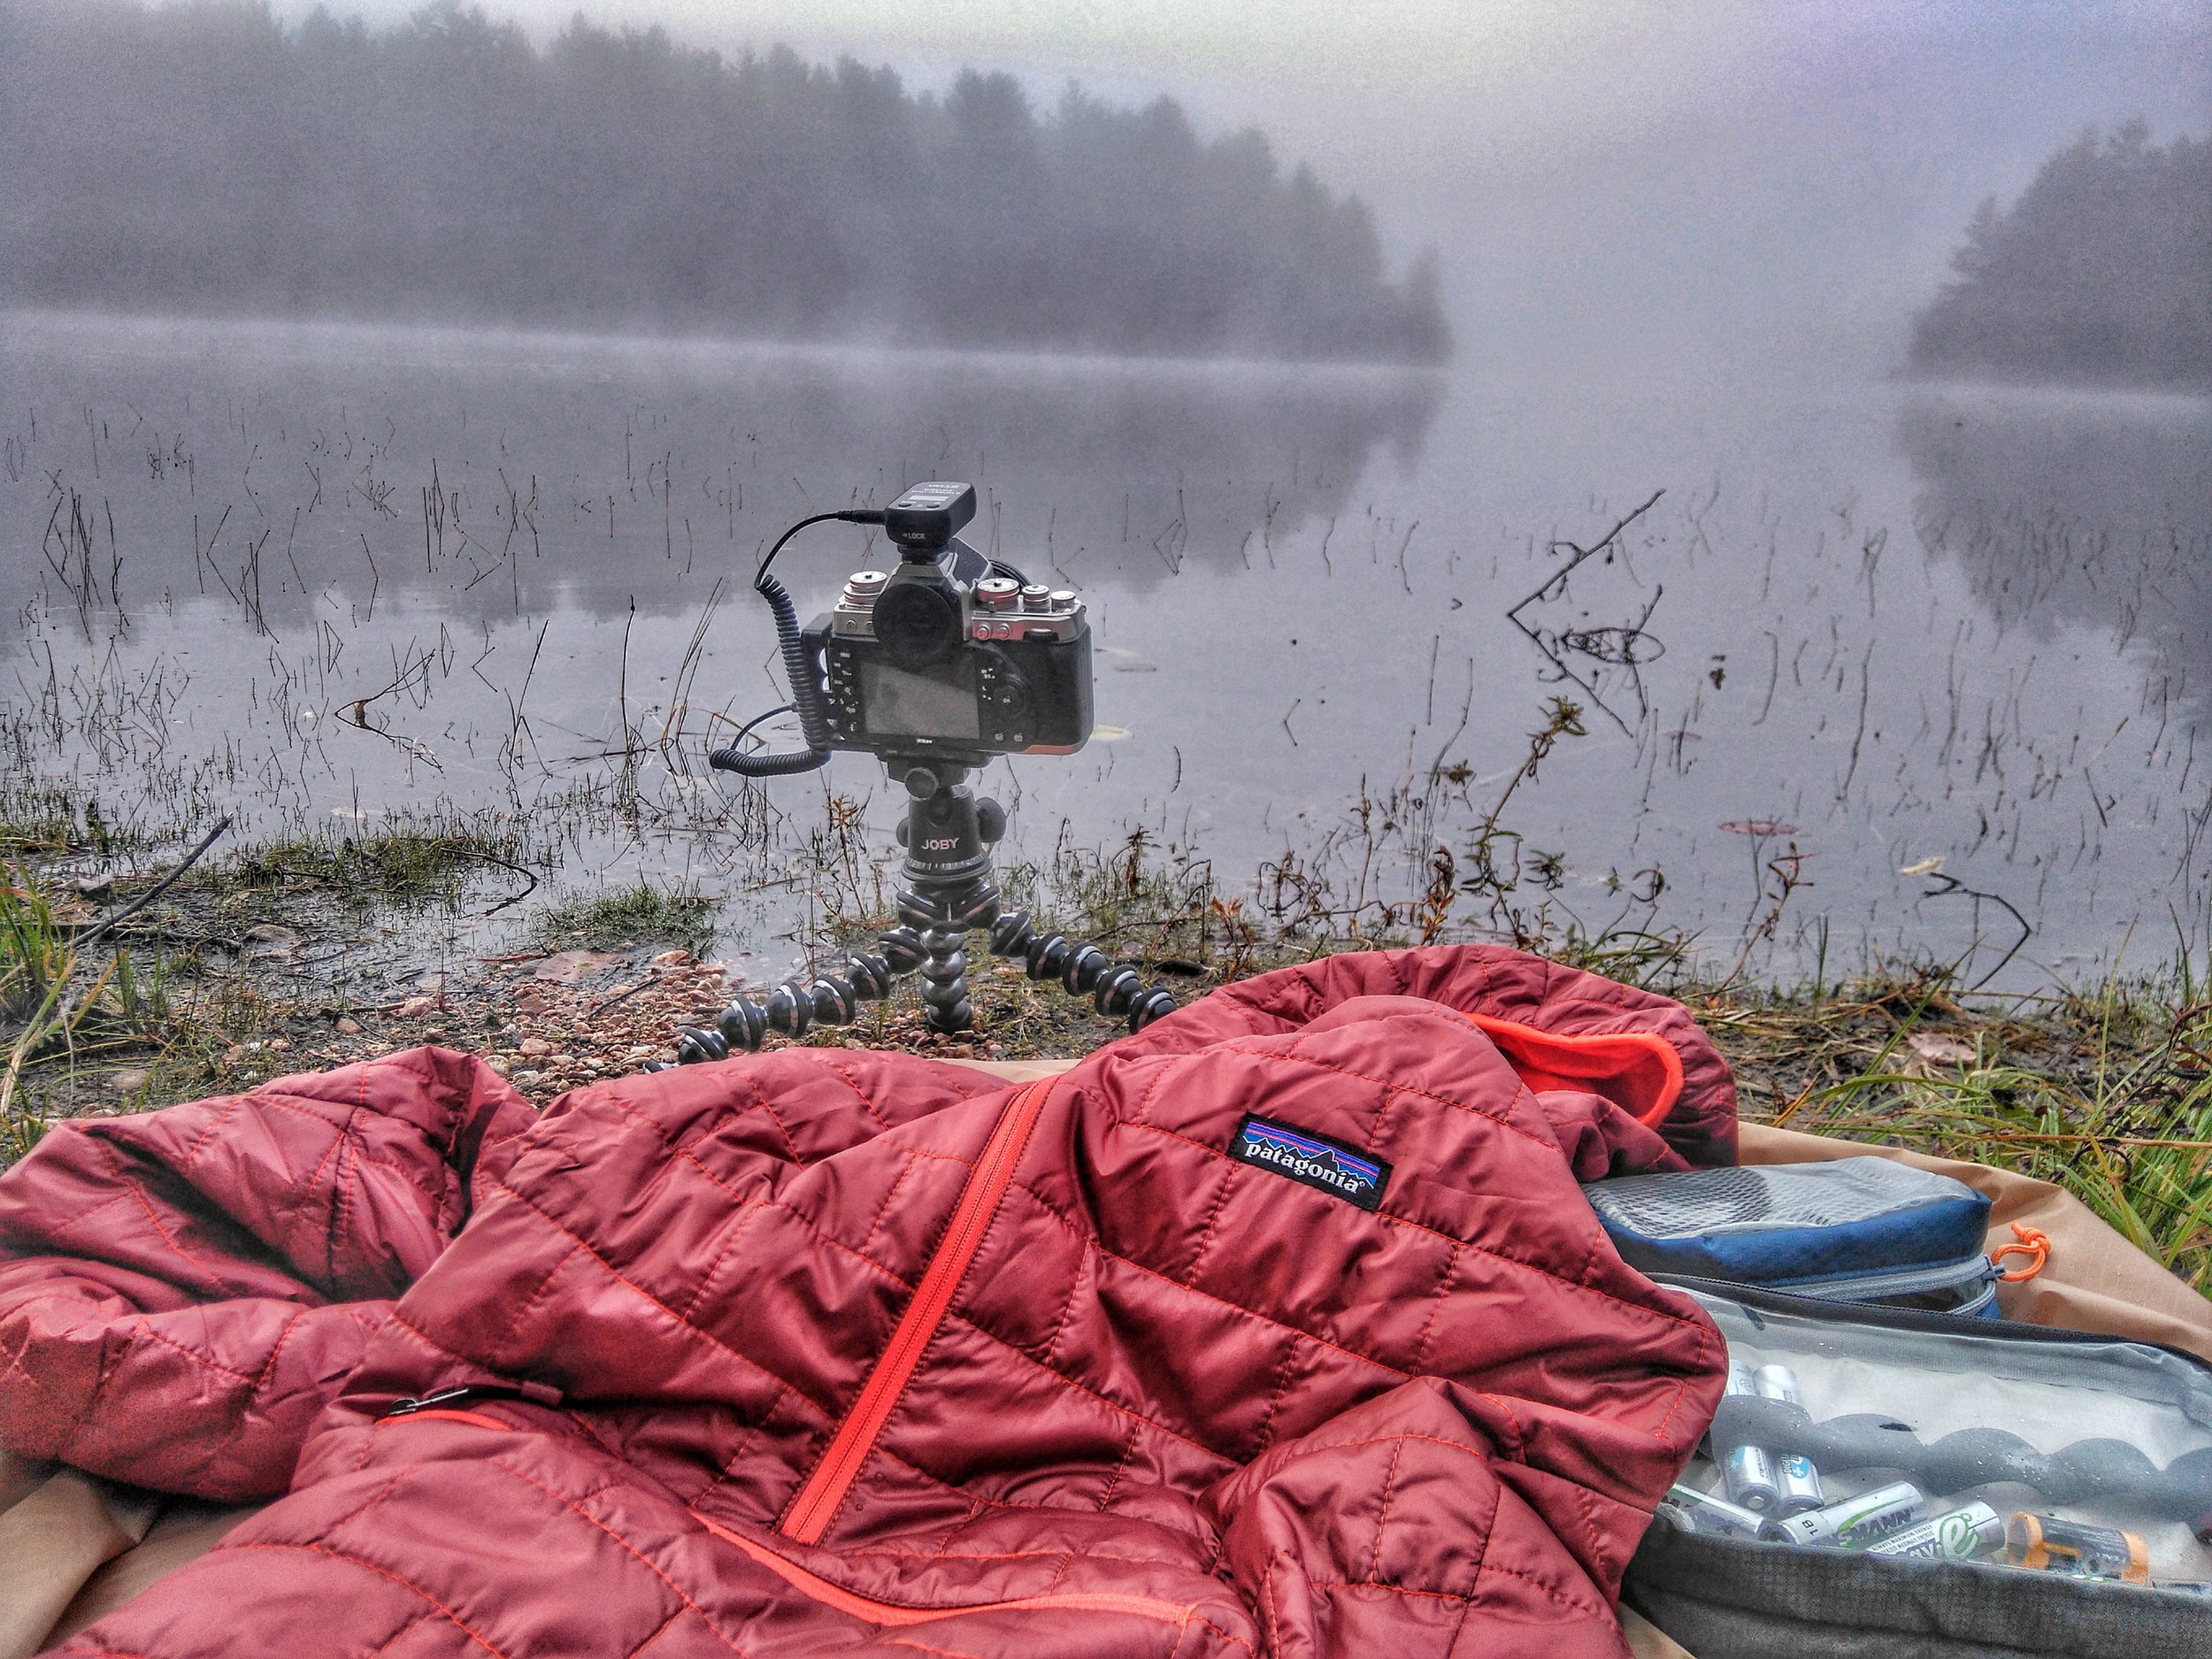 Behind the scenes with my  Patagonia Nano-Puff Bivy Pullover  on a foggy Algonquin morning.  Shot on a Sony Xperia M4 Aqua Smartphone, processed with Snapseed.